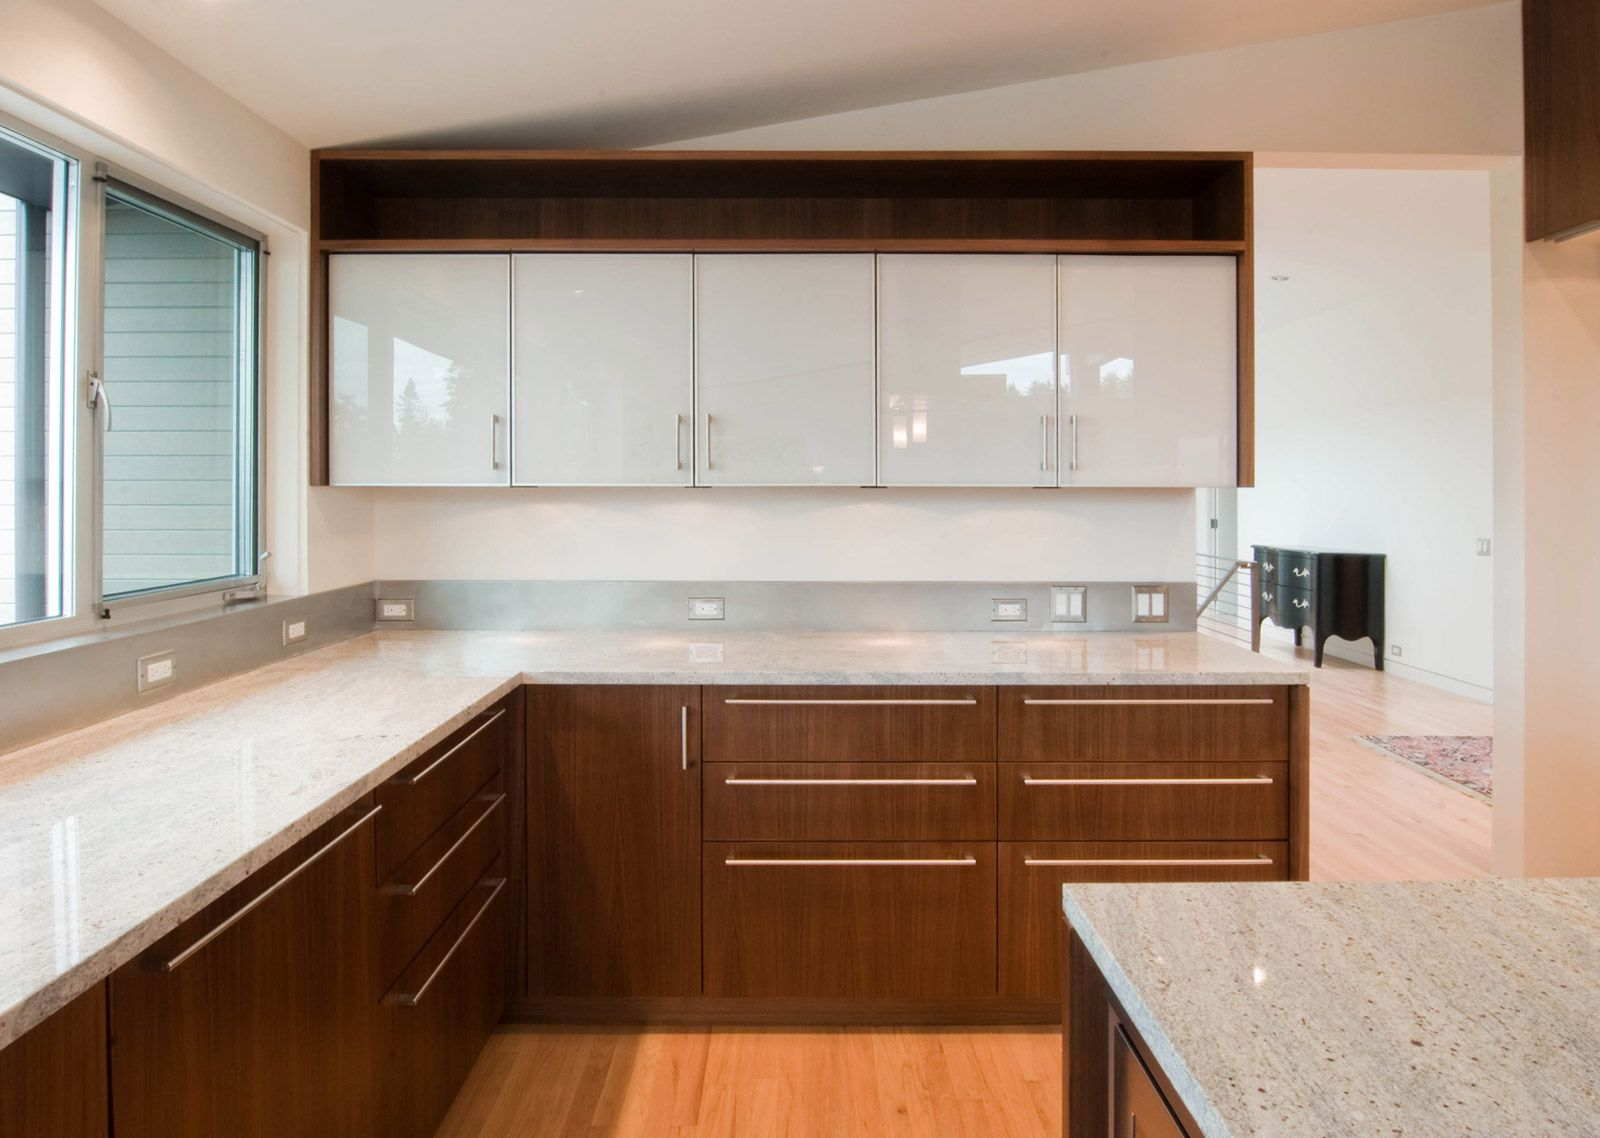 Fashion Proof Material Palettes Build Blog Grey Countertops Gray Stained Cabinets Staining Cabinets